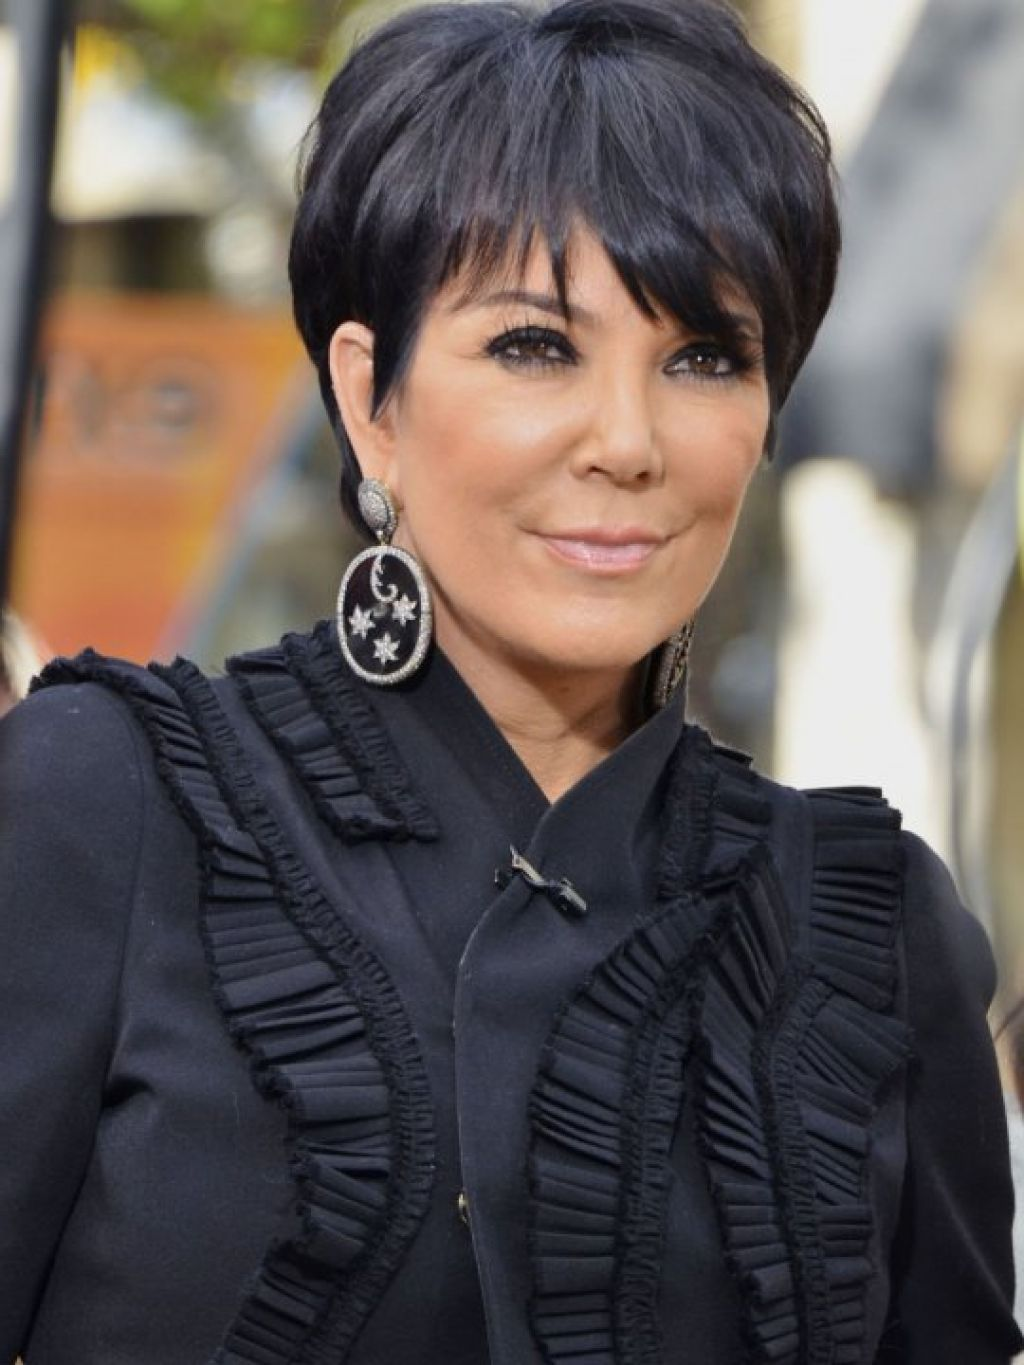 chris jenner haircut hairstyles kris jenner simple hair style this 1060